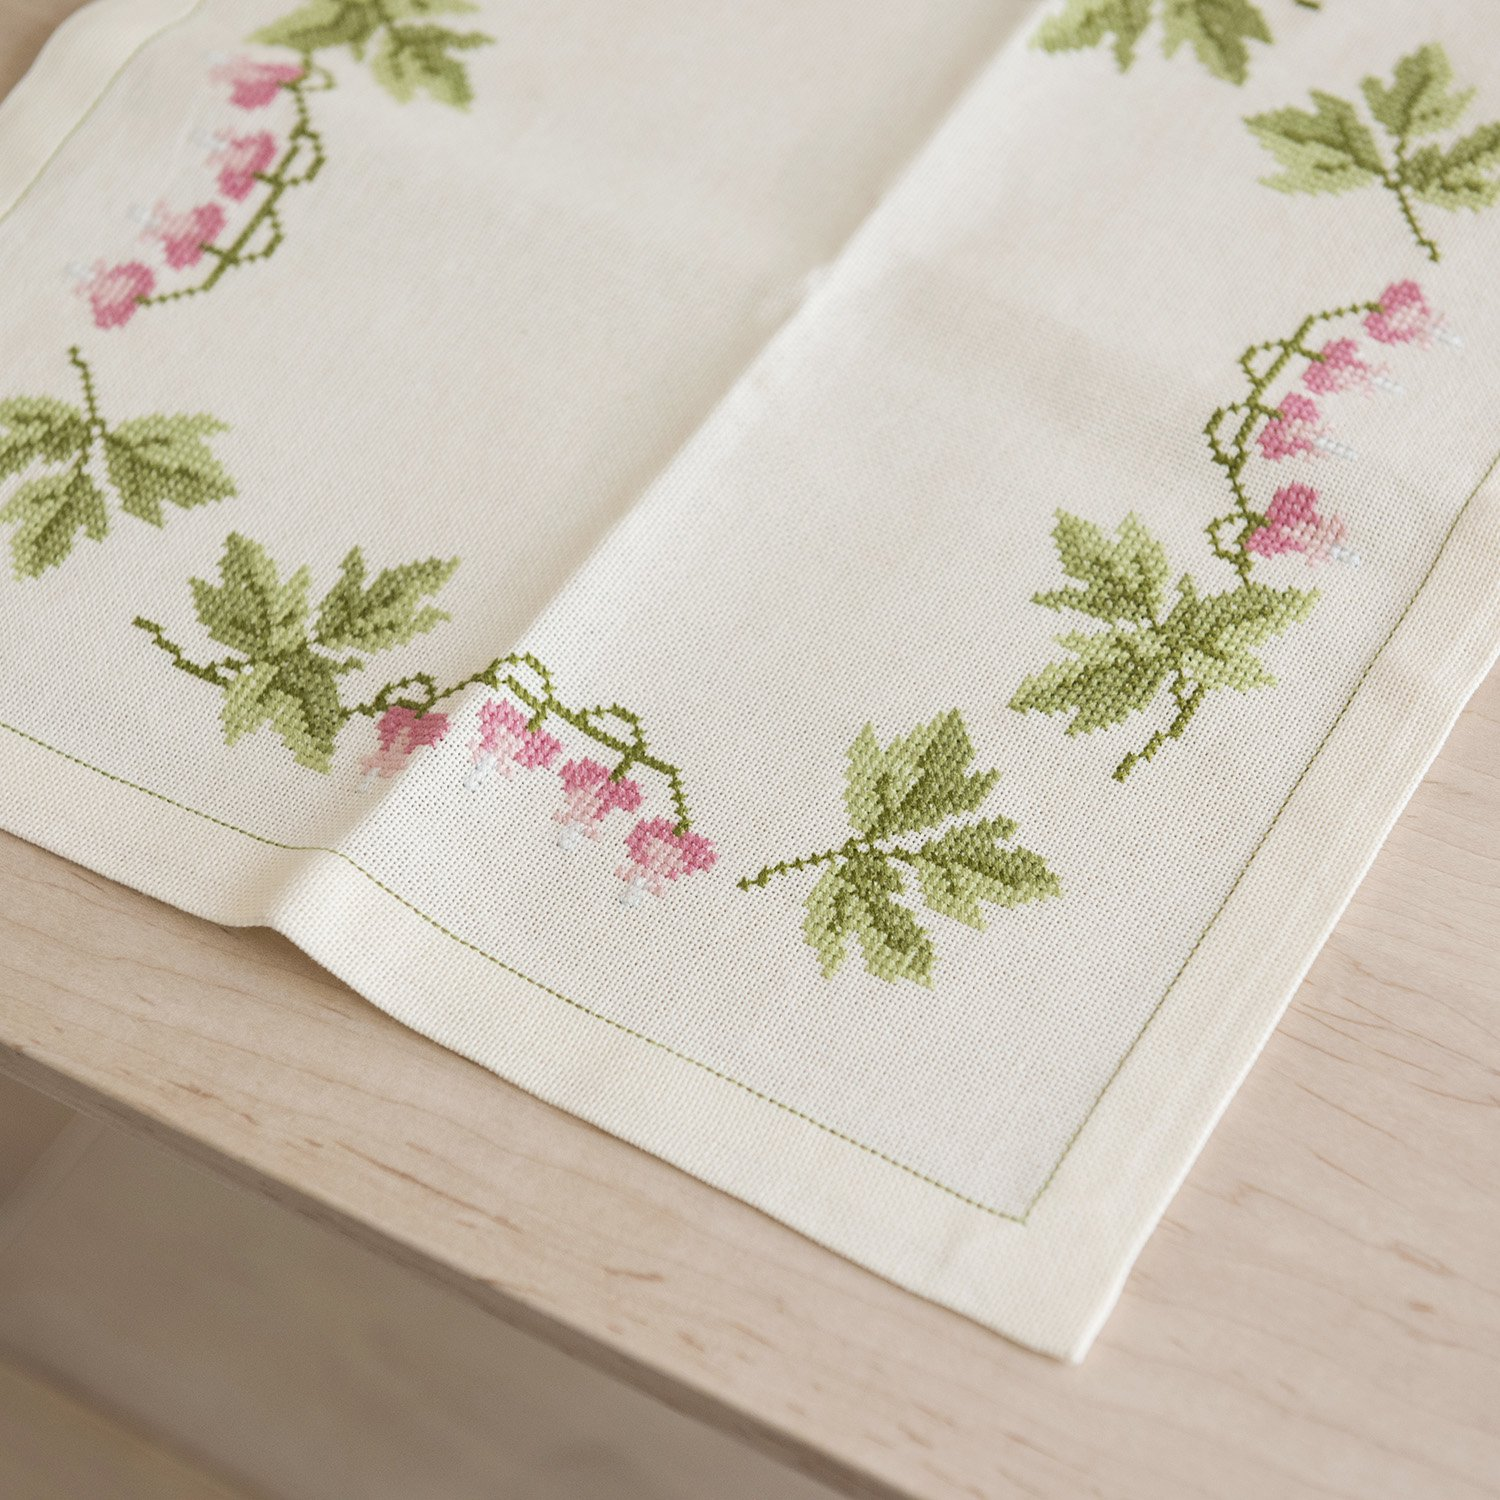 Floral cross stitch embroidery table cloth